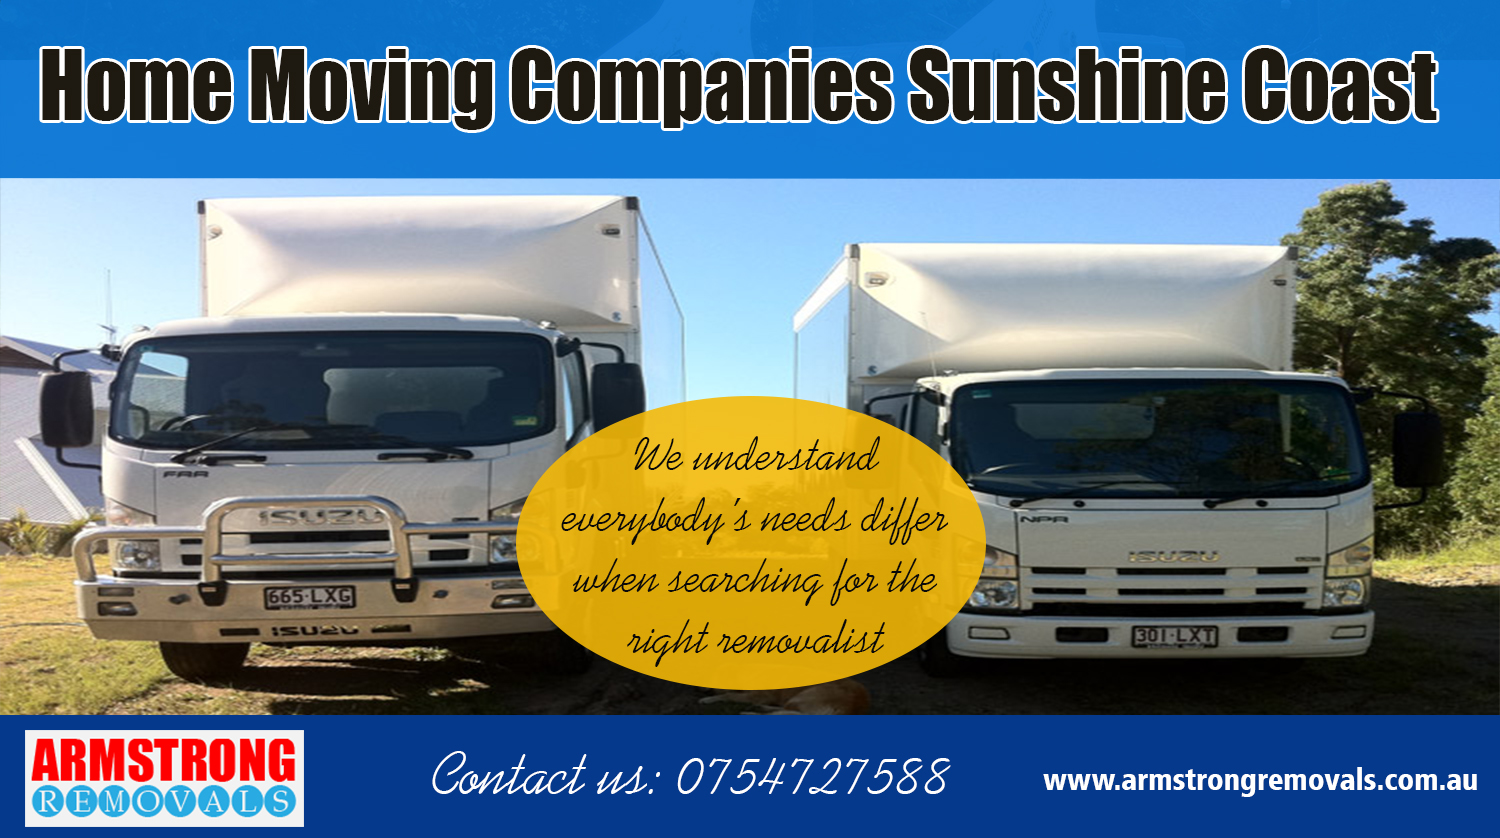 Home Moving Companies Sunshine Coast